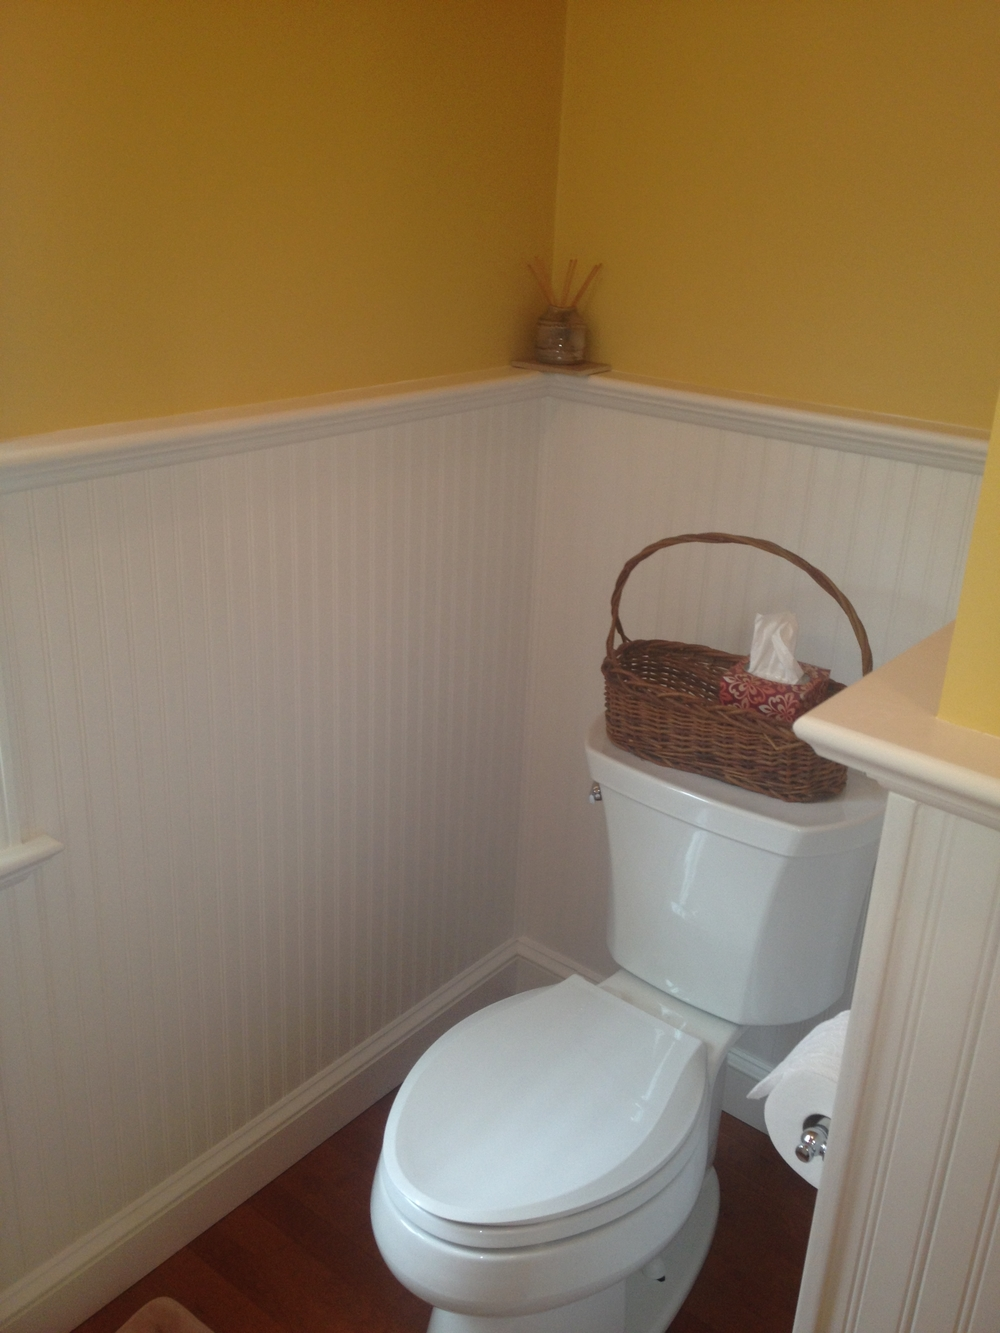 Wainscoting in the bathroom